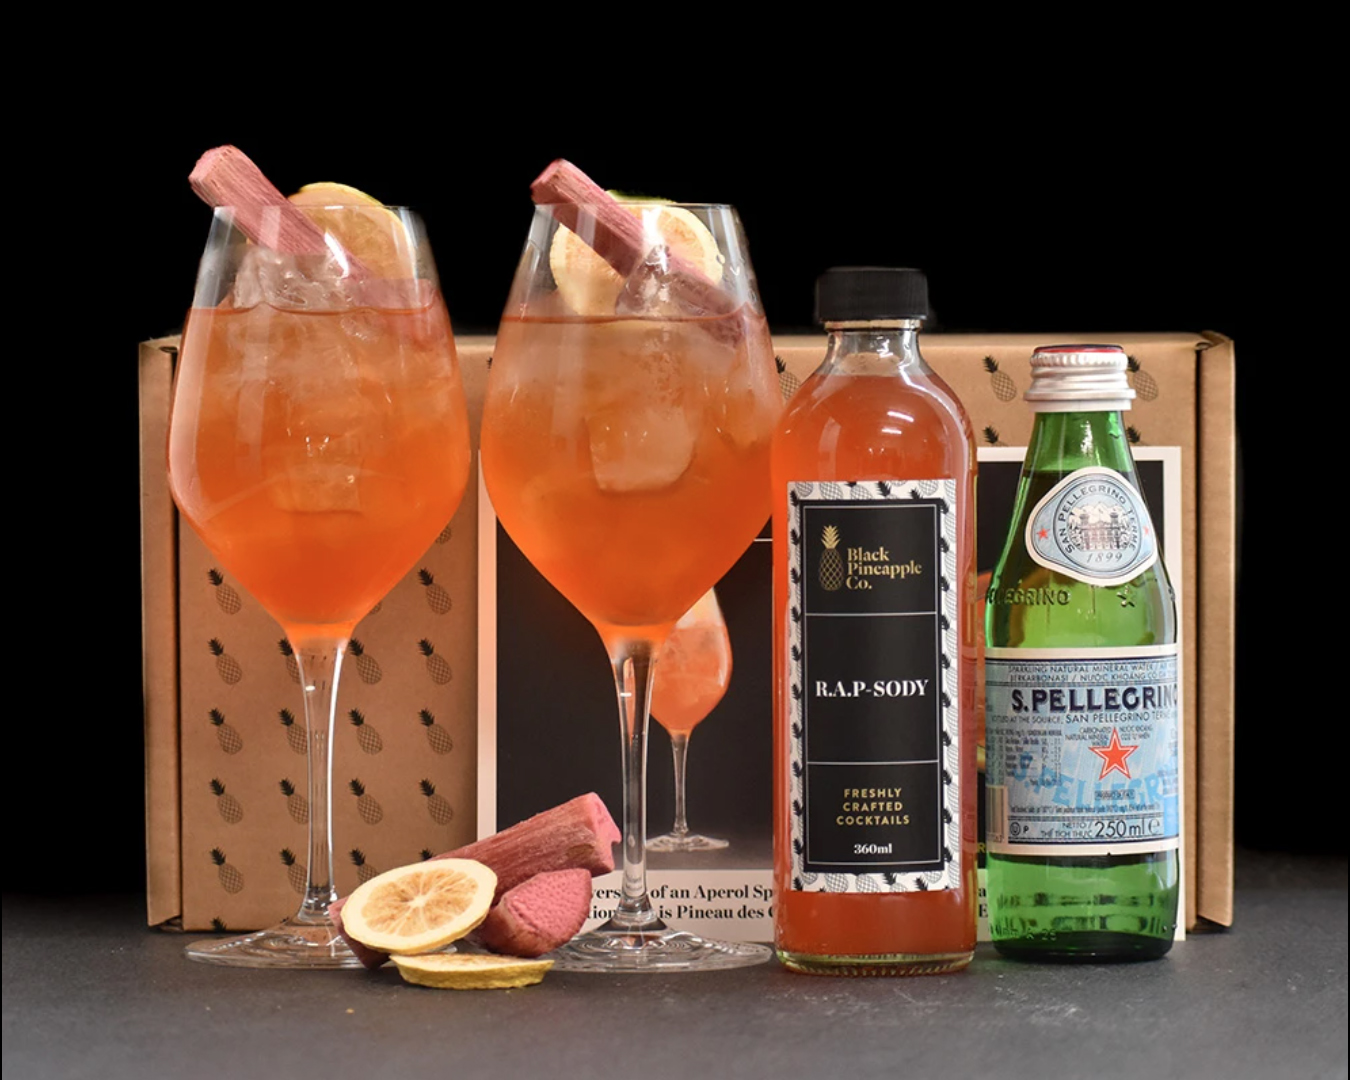 Cocktail kit featuring rhubarb and a special Black Pineapple cocktail mix